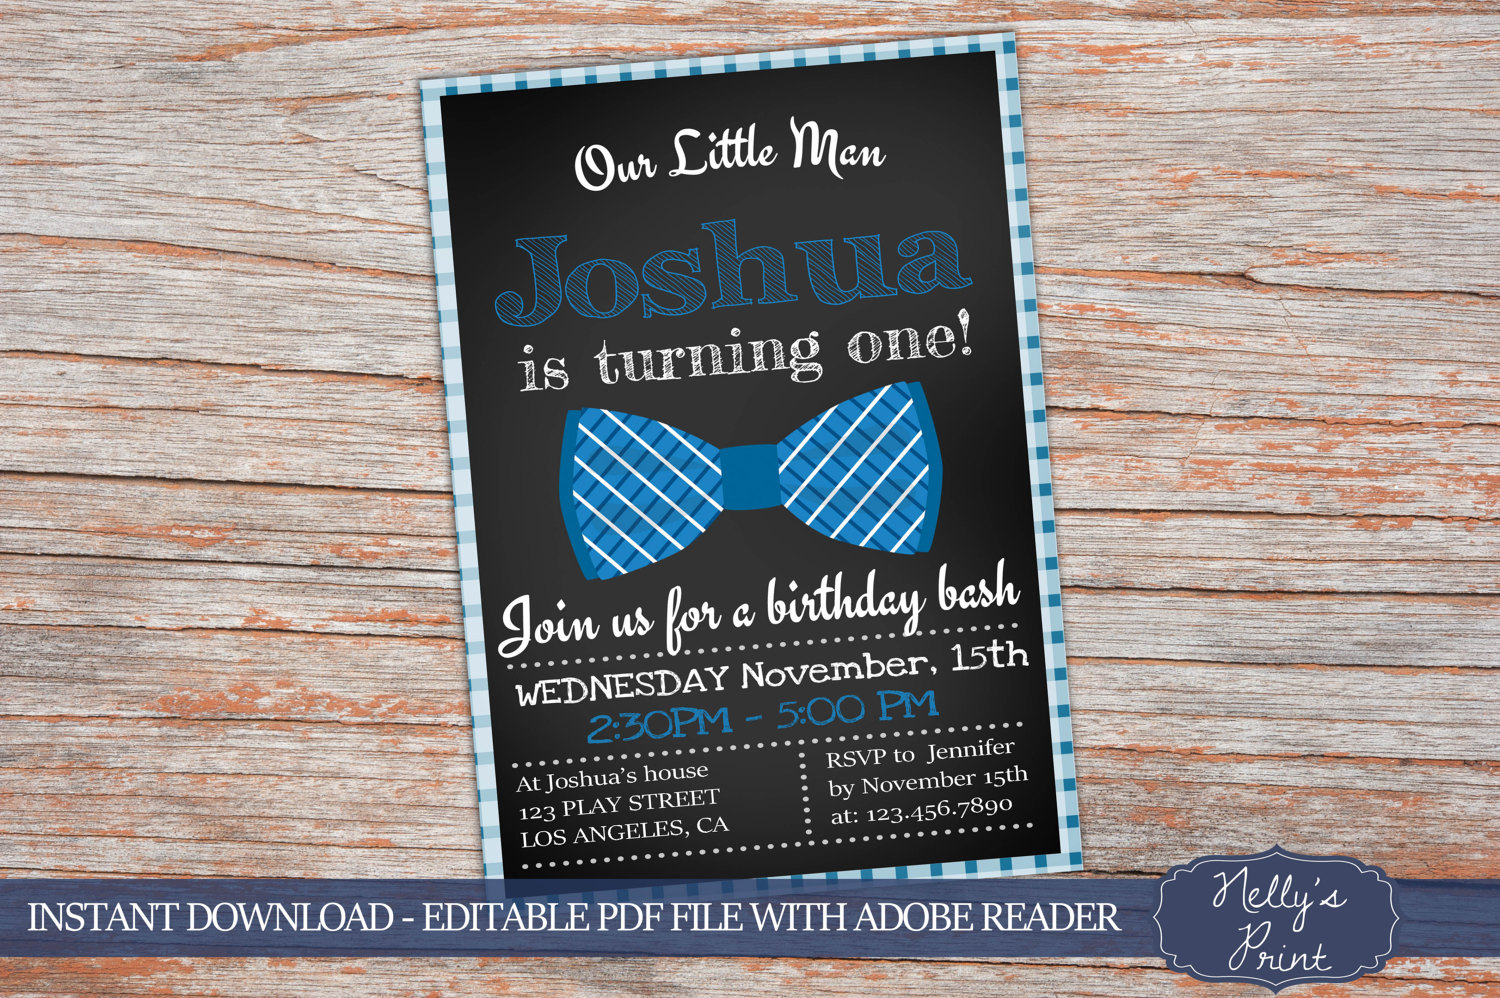 Bowtie birthday invitation little man birthday invitation bowtie bowtie birthday invitation little man birthday invitation bowtiebowtie party self editable filmwisefo